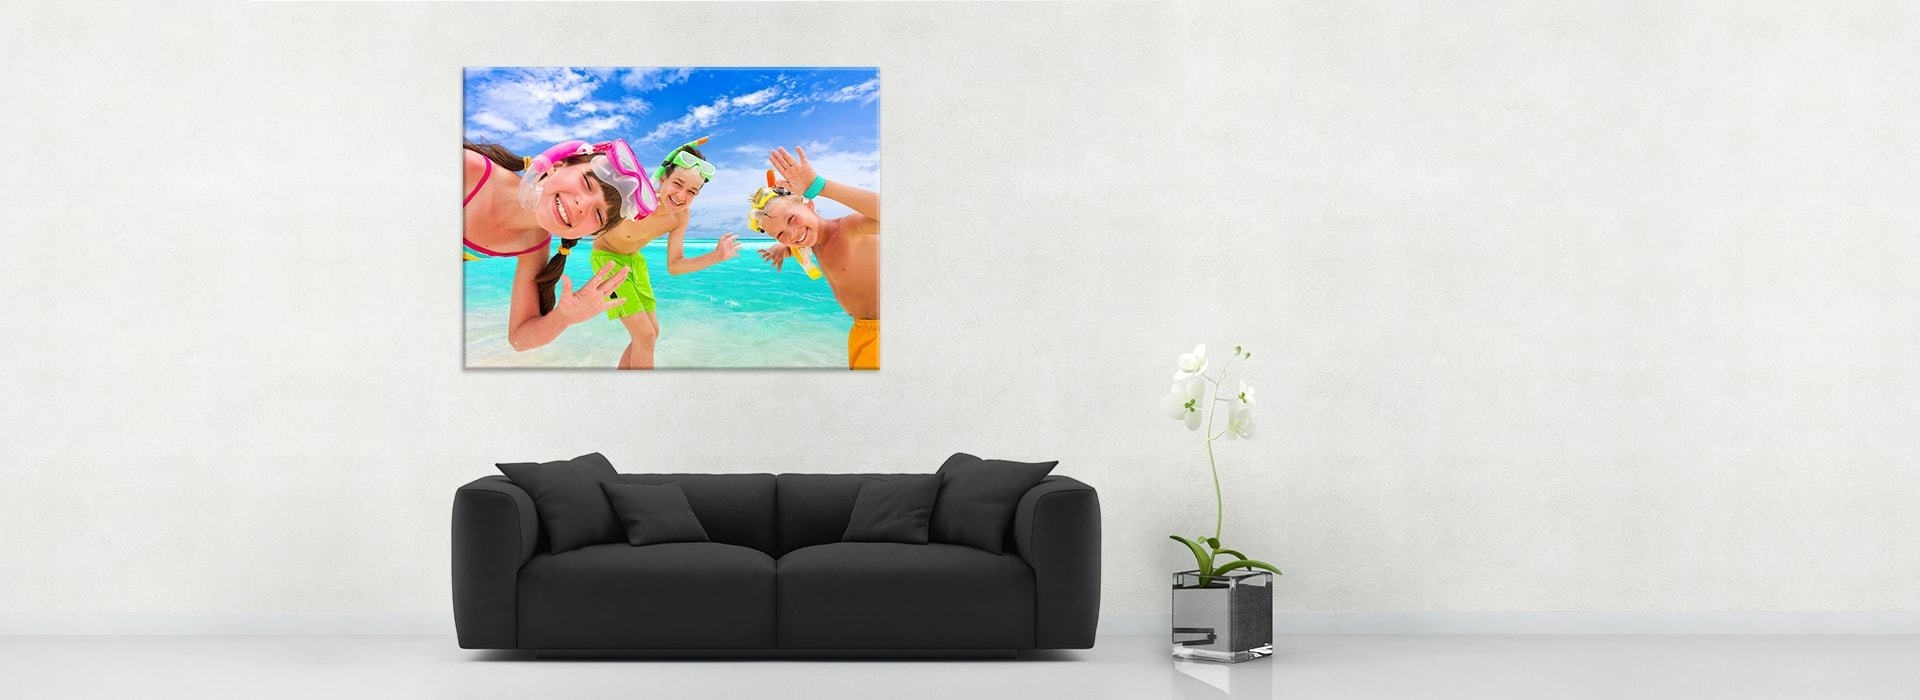 Newest Canvas Wall Art Of Philippines Intended For Canvas Prints (Gallery 7 of 15)